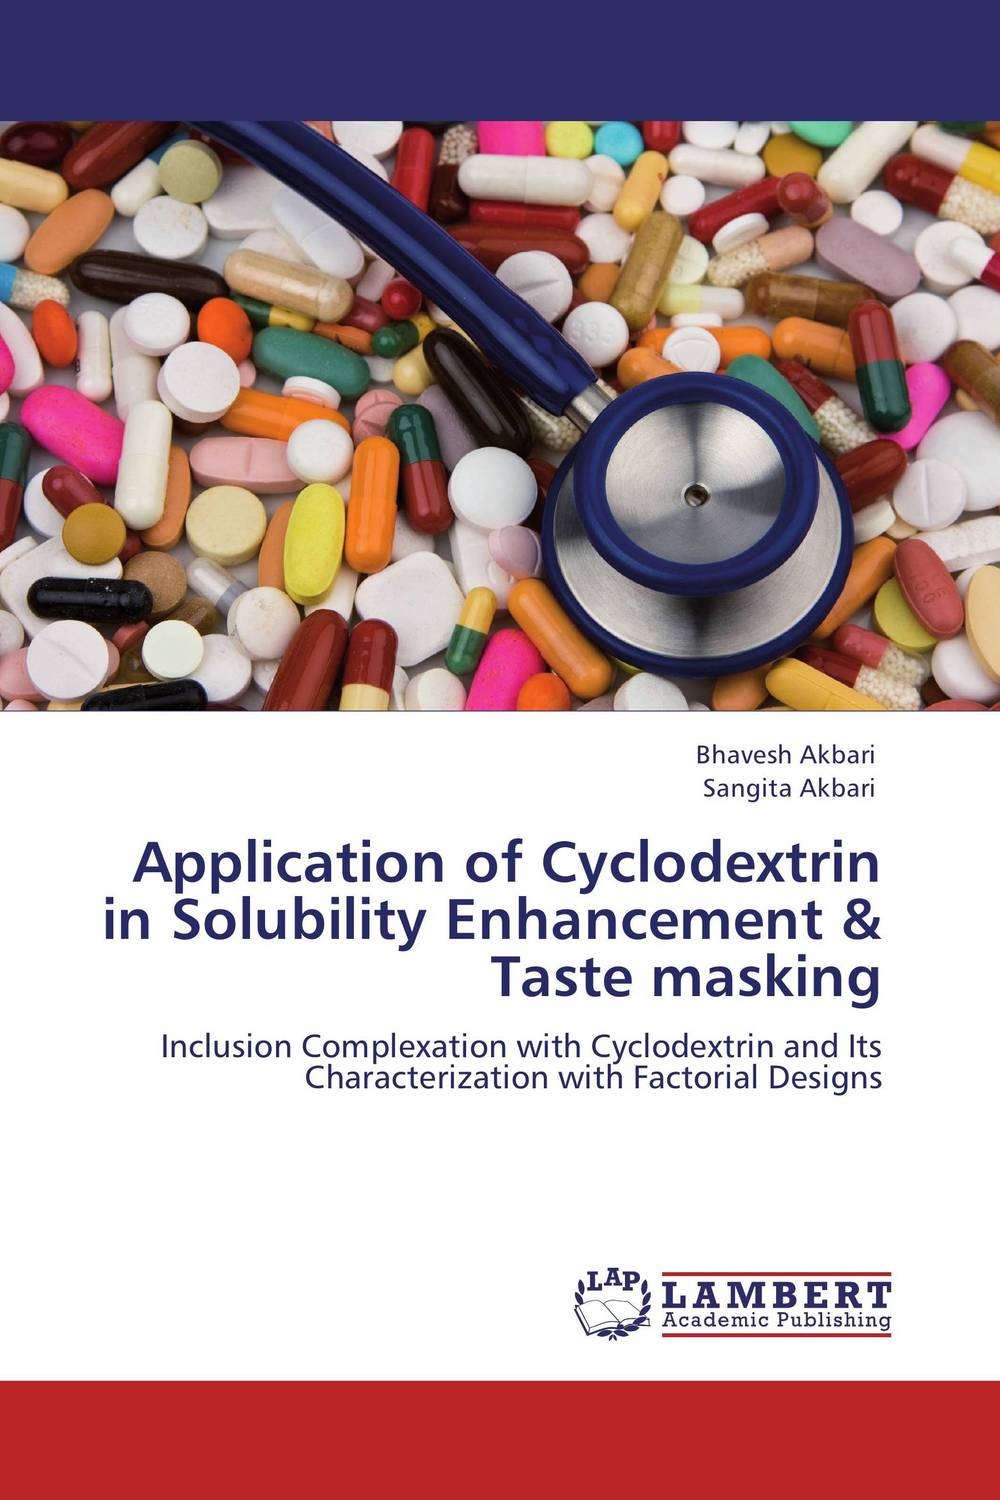 Application of Cyclodextrin in Solubility Enhancement & Taste masking